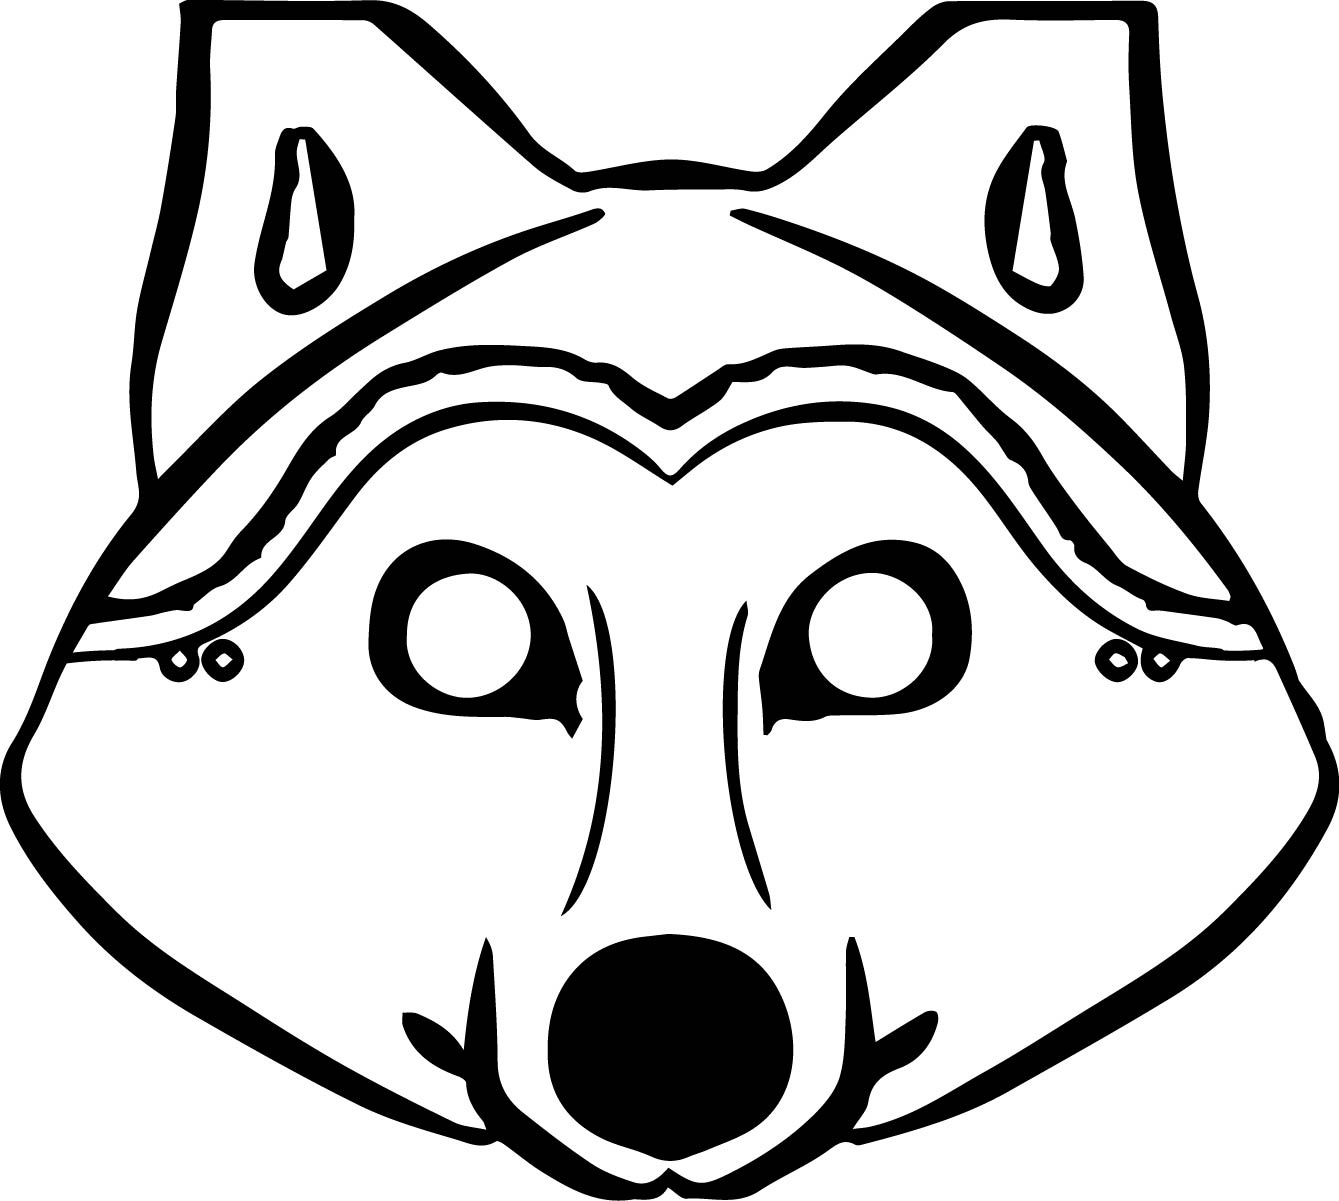 Coloring Ideas : Phenomenal Free Wolf Coloring Pages Printable - Free Printable Wolf Face Mask